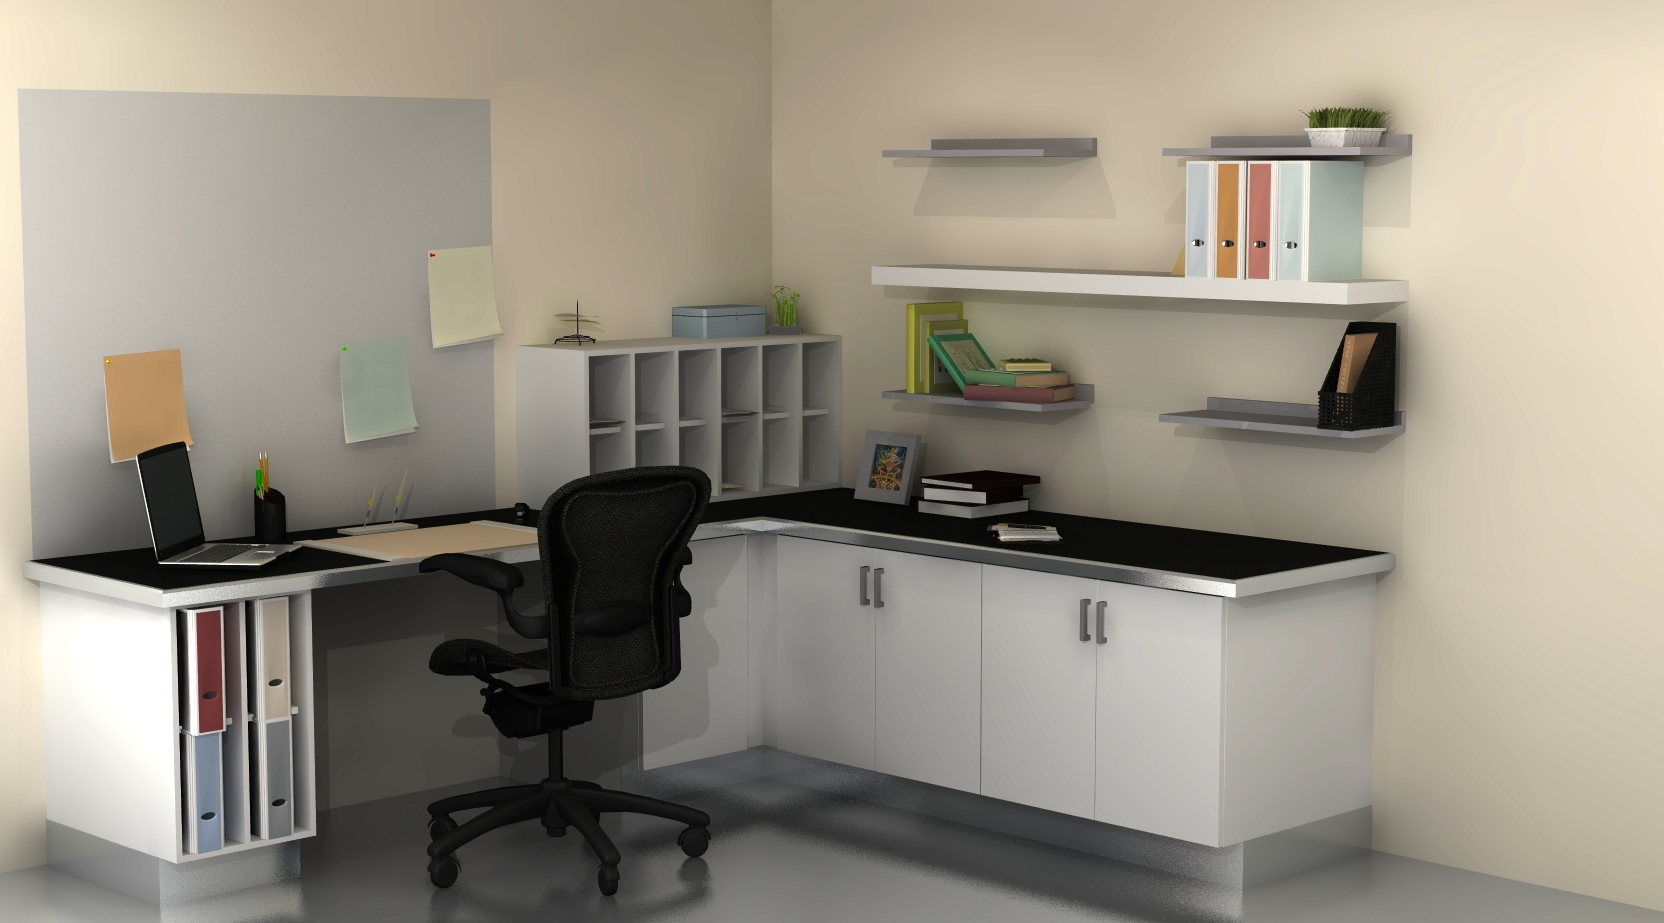 Useful spaces a home office with ikea cabinets Corner home office design ideas